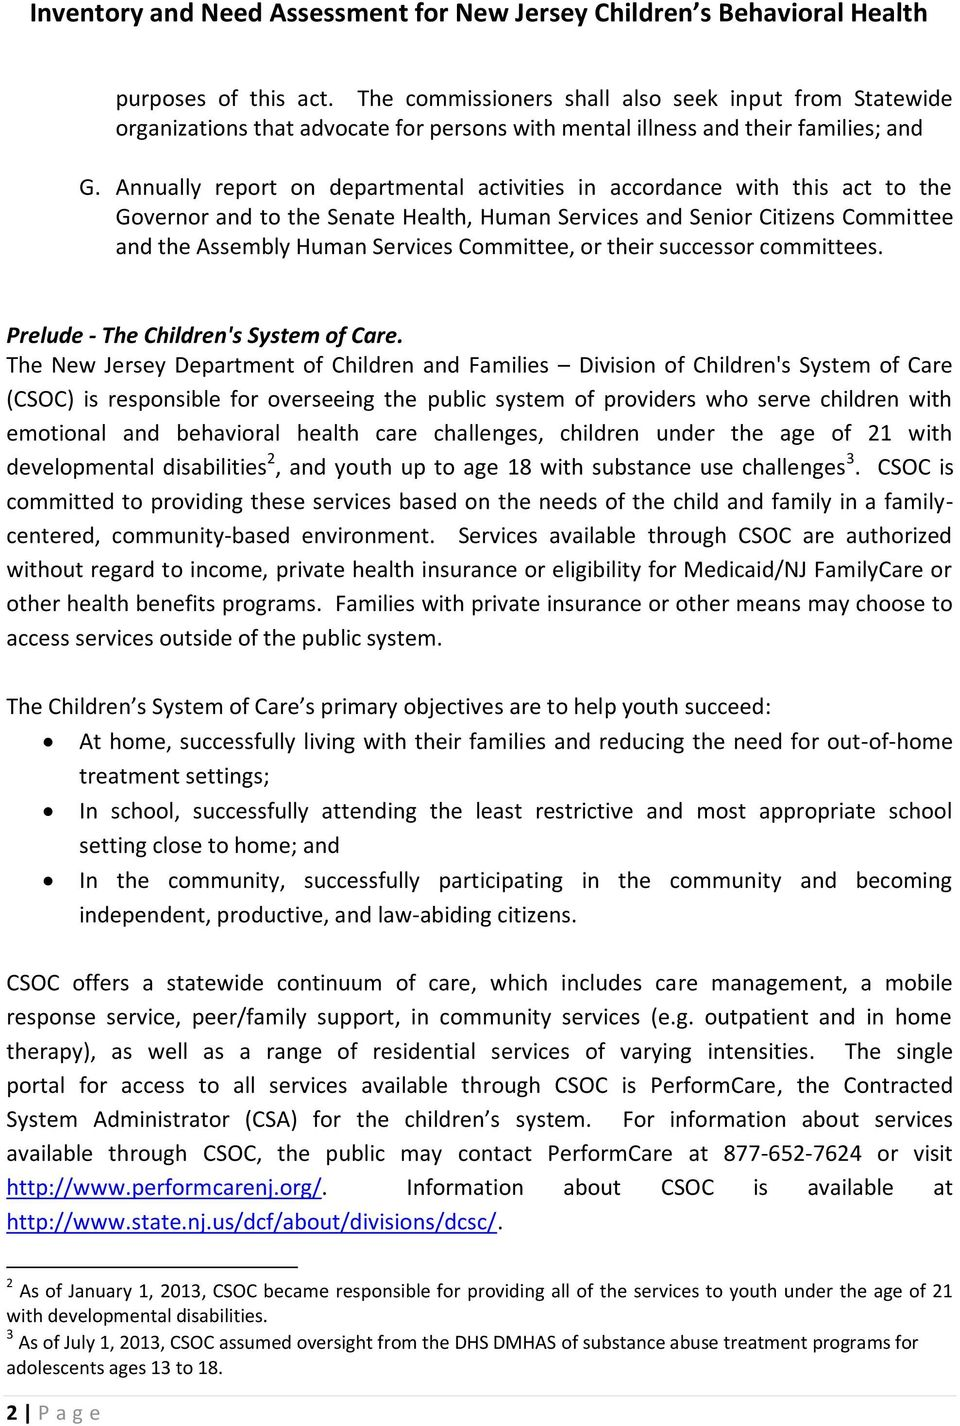 Committee, or their successor committees. Prelude - The Children's System of Care.